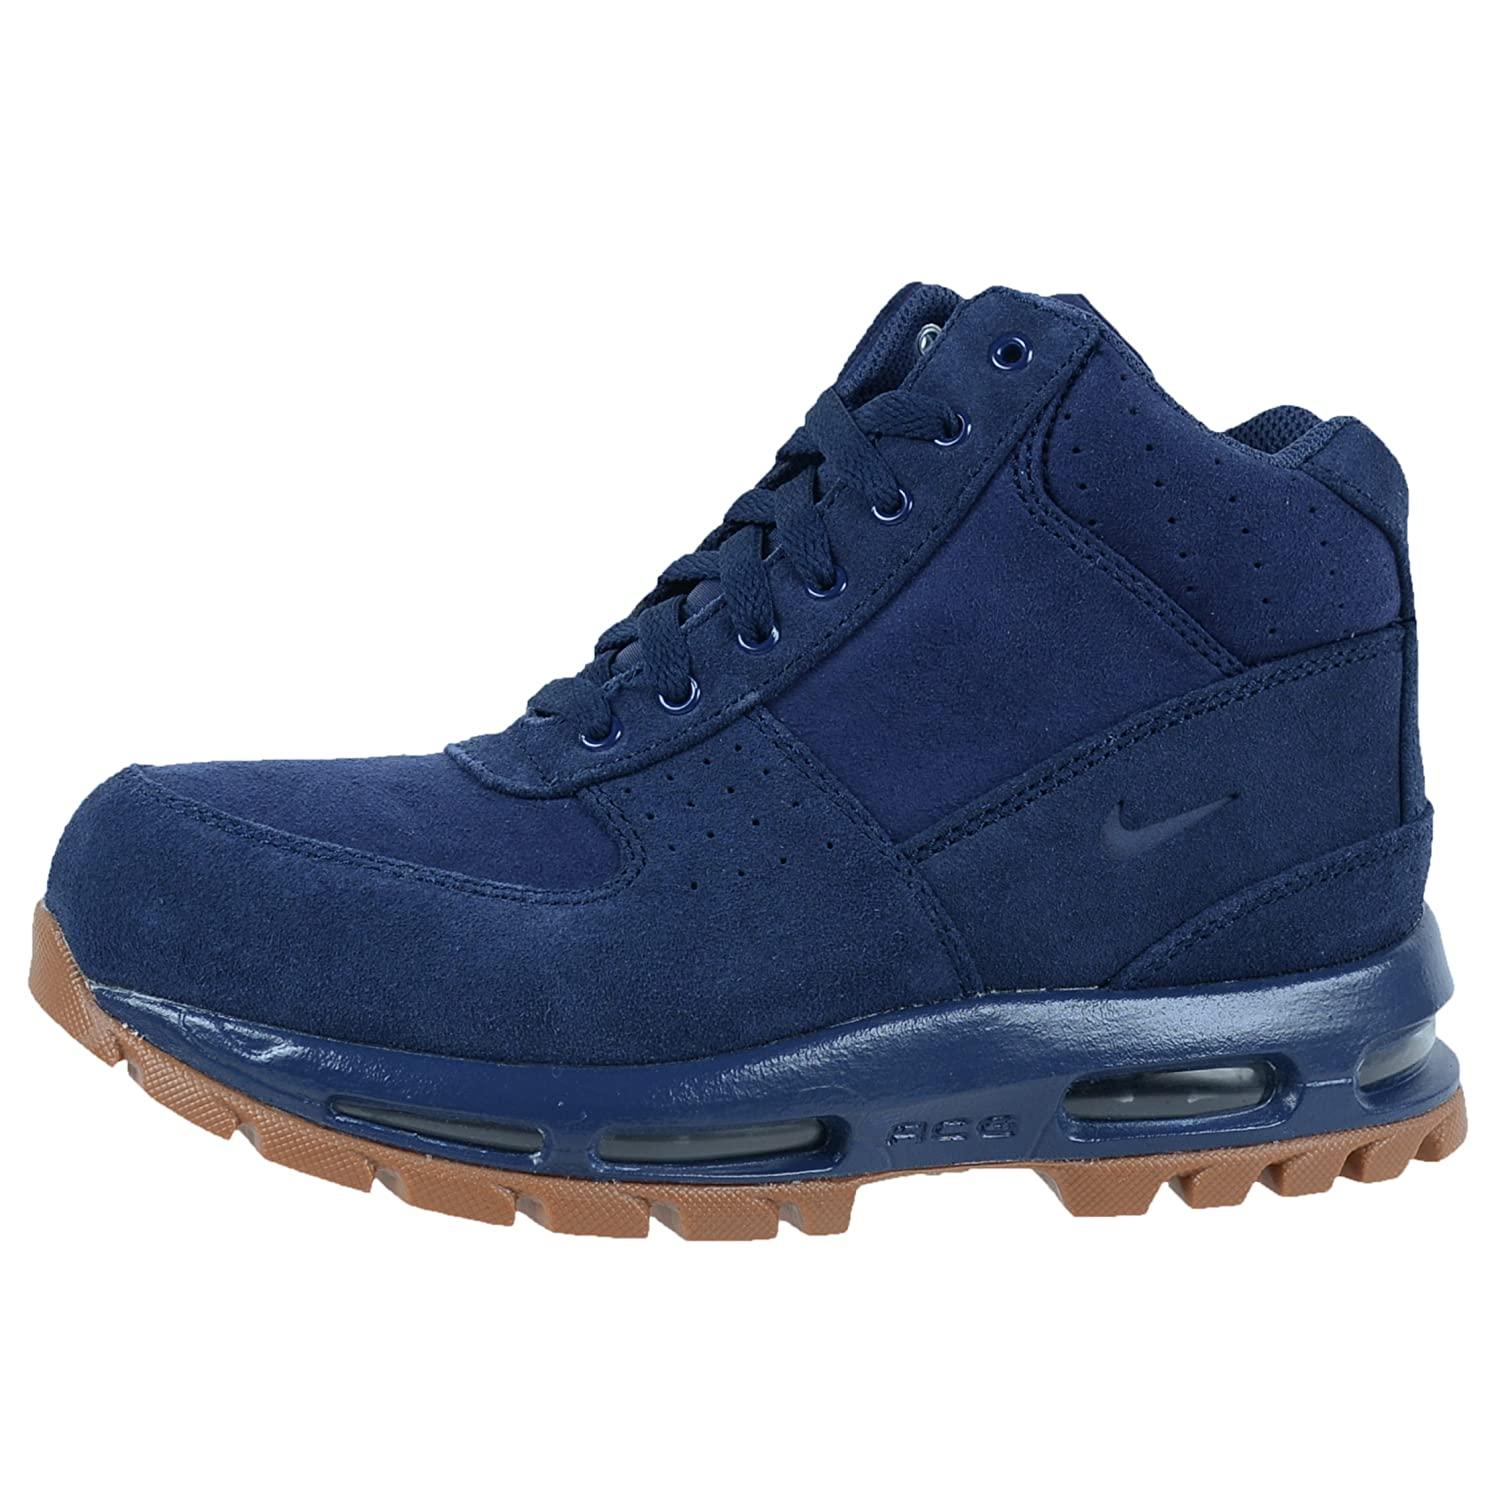 various colors 74e7e ccbcd Amazon.com   Nike Air Max Goadome (GS) Kids Youth Boots Shoes Size 7Y    Boots